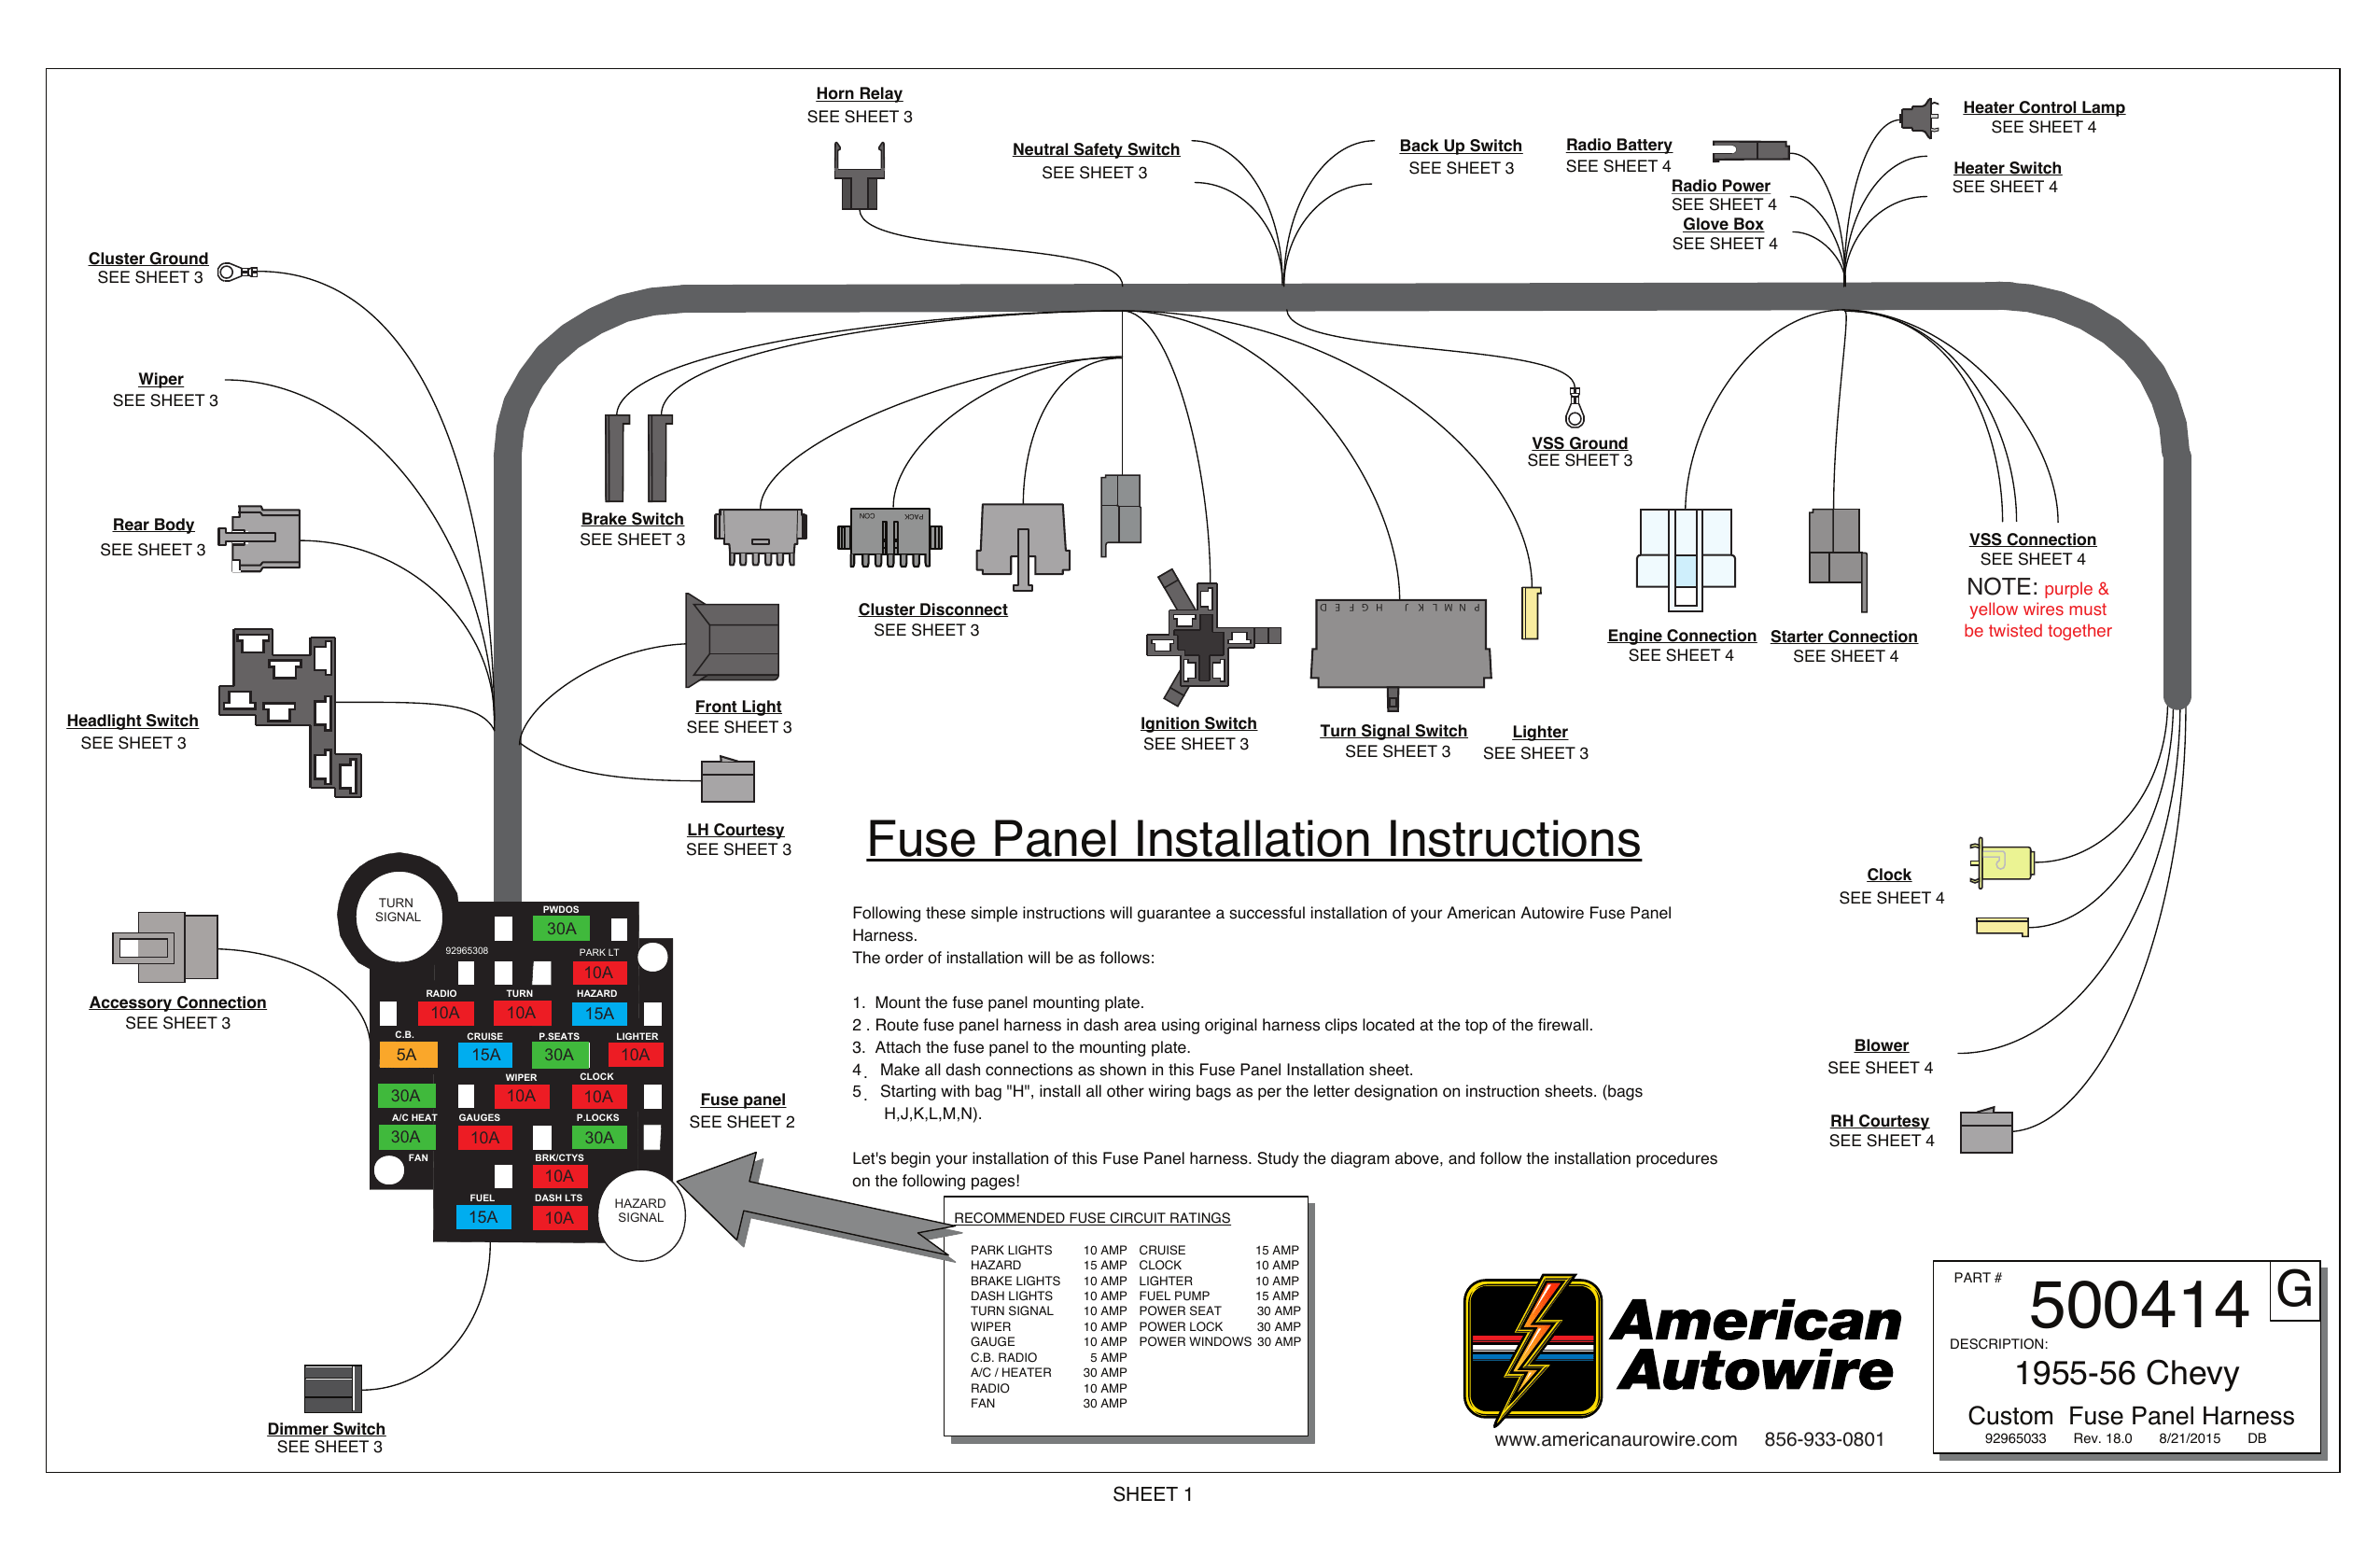 Fuse Panel Installation Instructions G